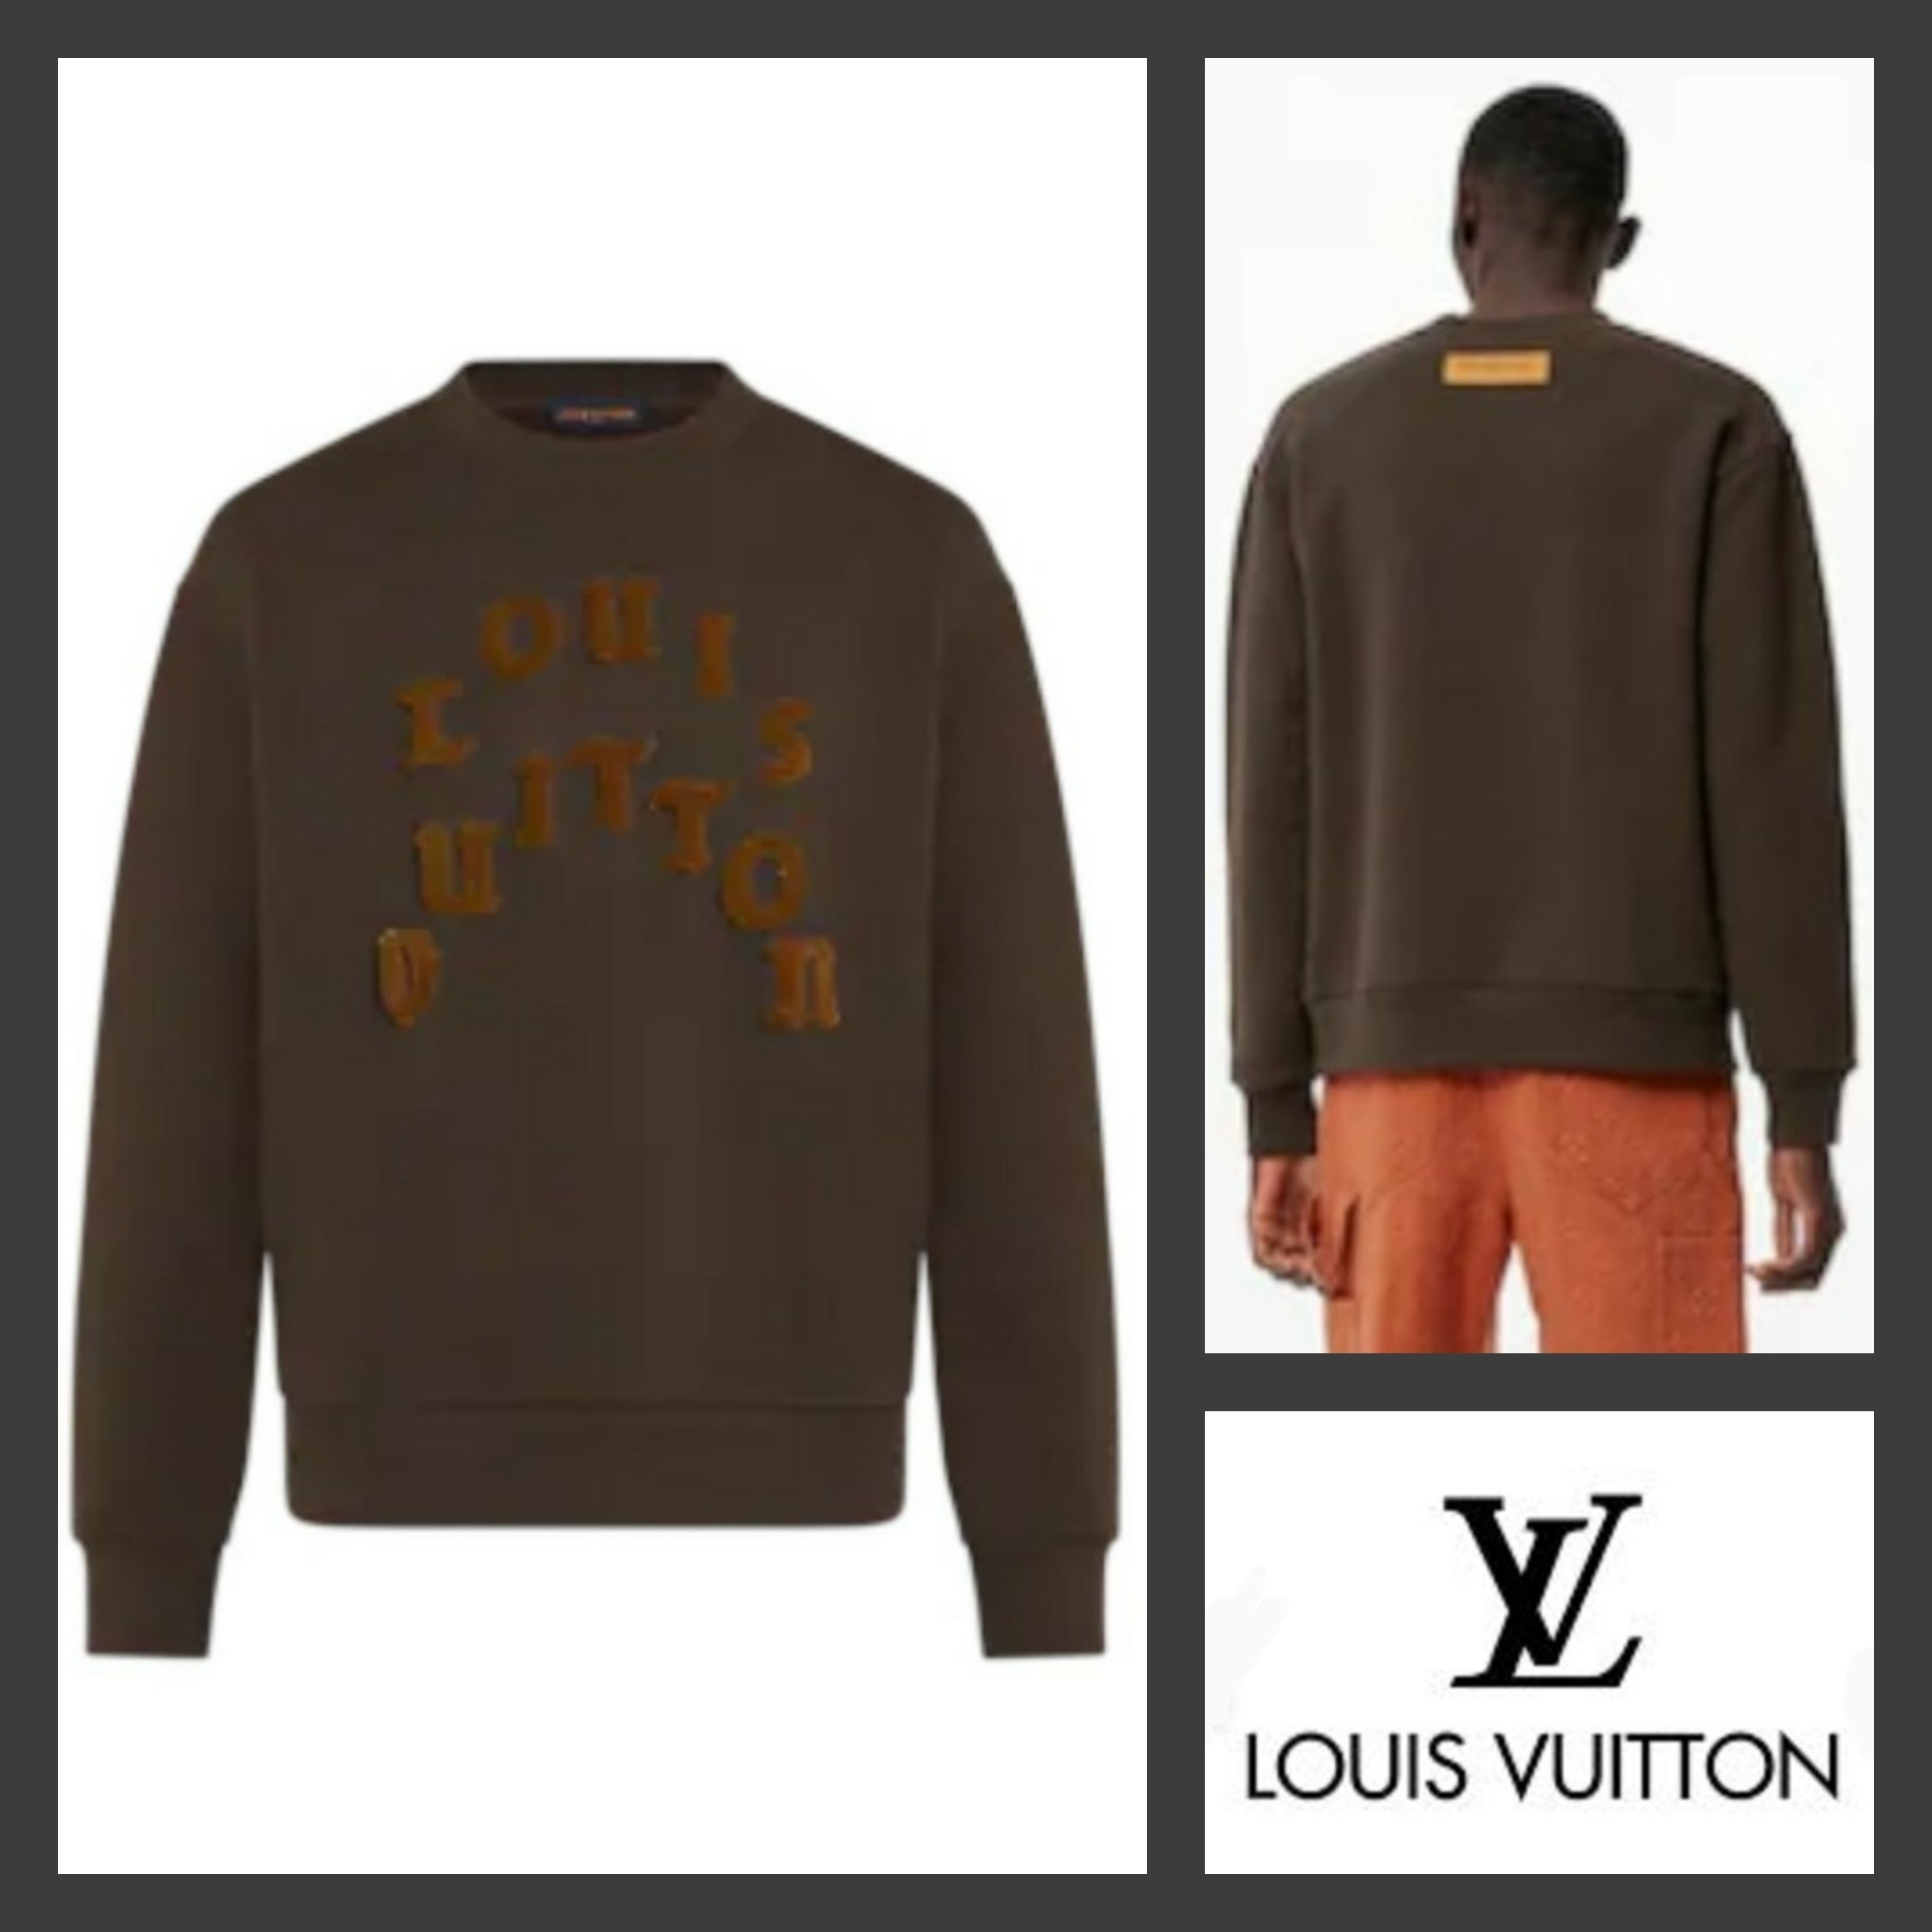 21FW★LOUIS VUITTON★ タフタージュクルーネック 1A977H (Louis Vuitton/Tシャツ・カットソー) 1A977H 1A977I 1A977J 1A977K  1A977L 1A977M 1A977N 1A977O